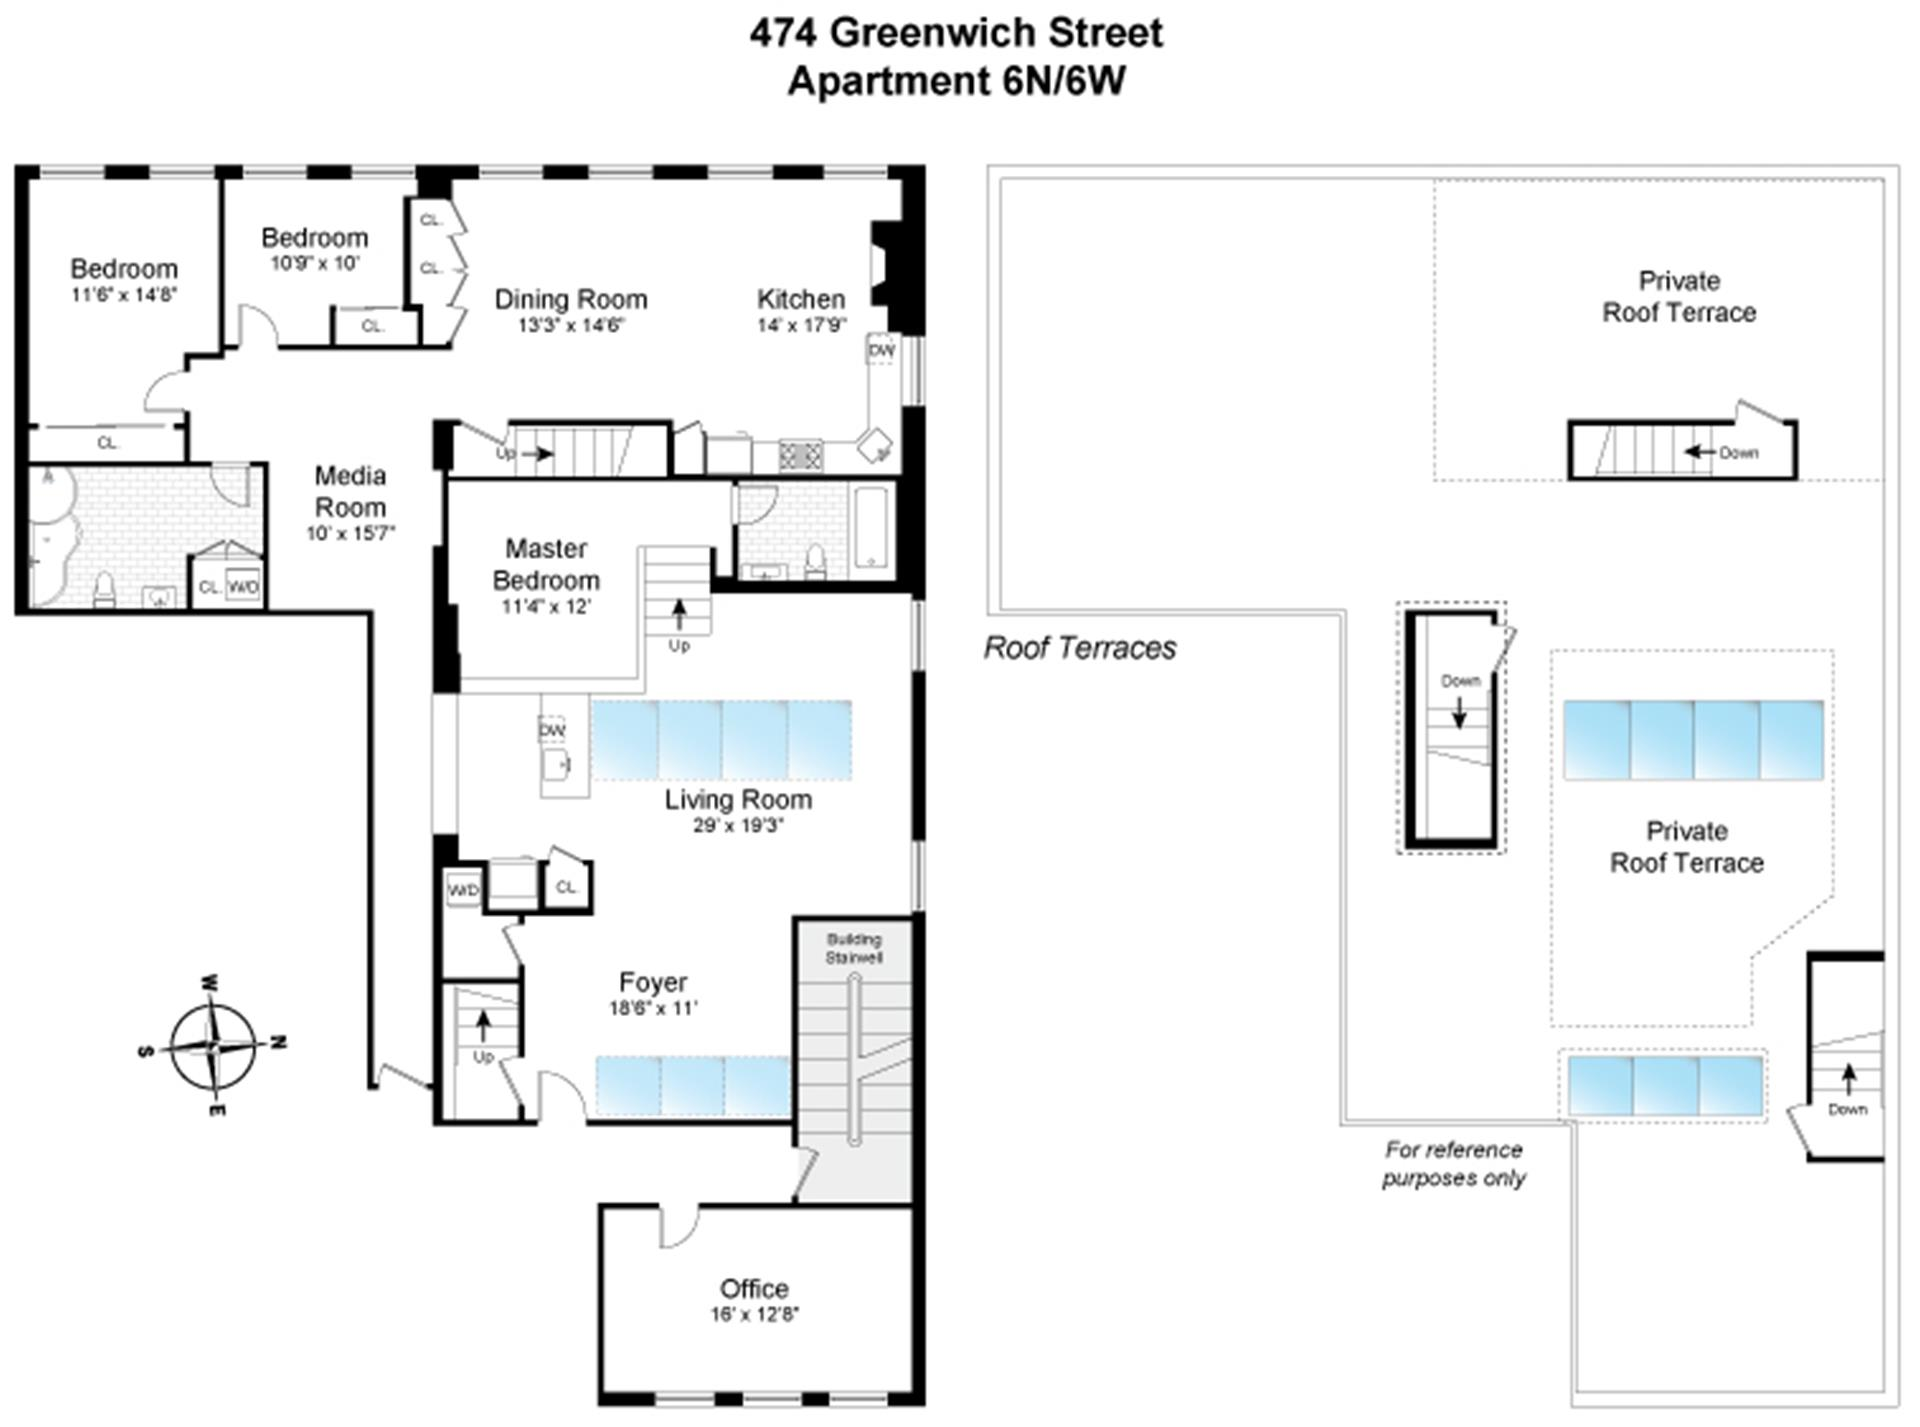 Floor plan of 474 Greenwich St, 6NW - TriBeCa, New York